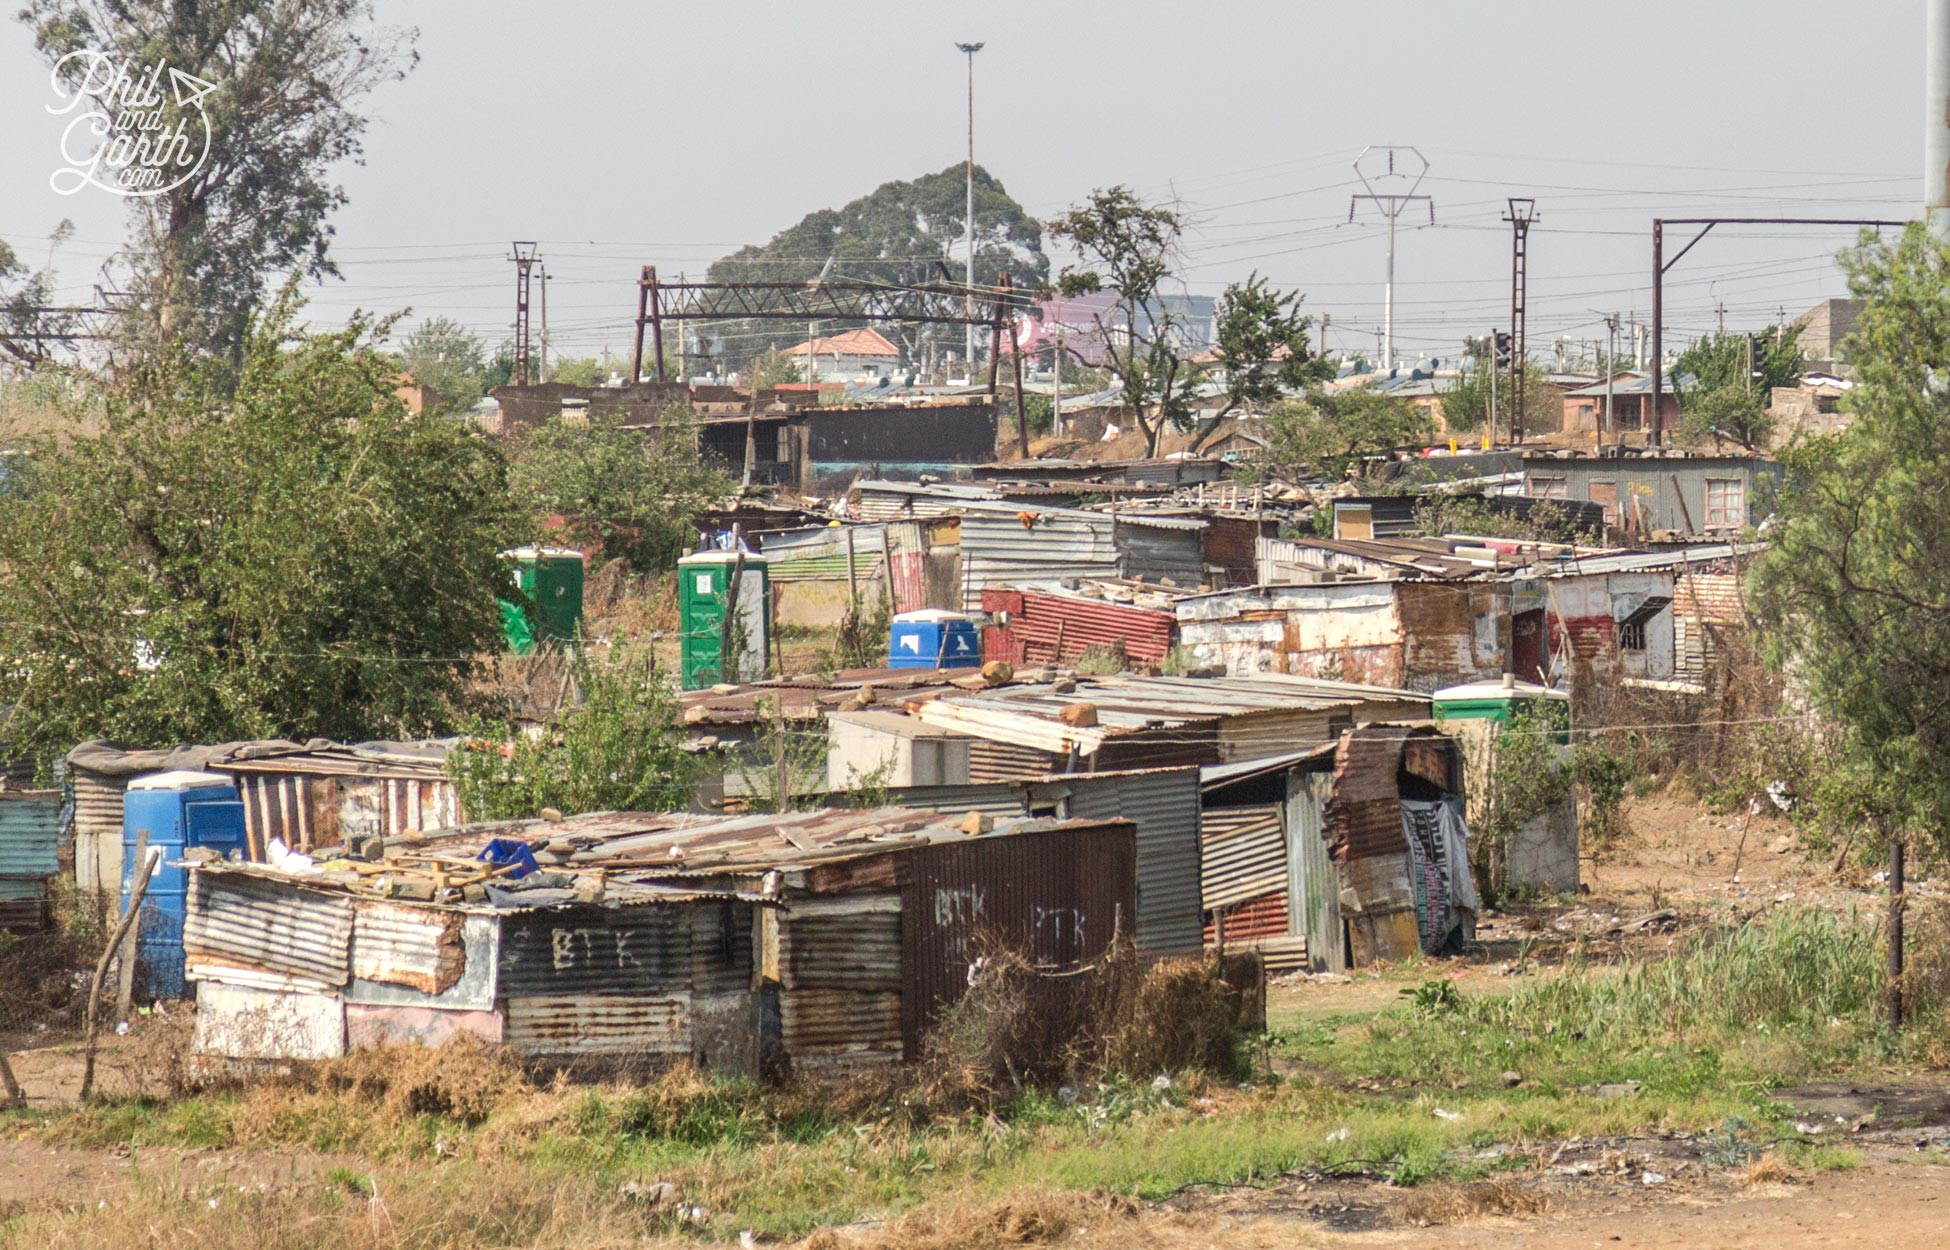 A smaller Soweto township